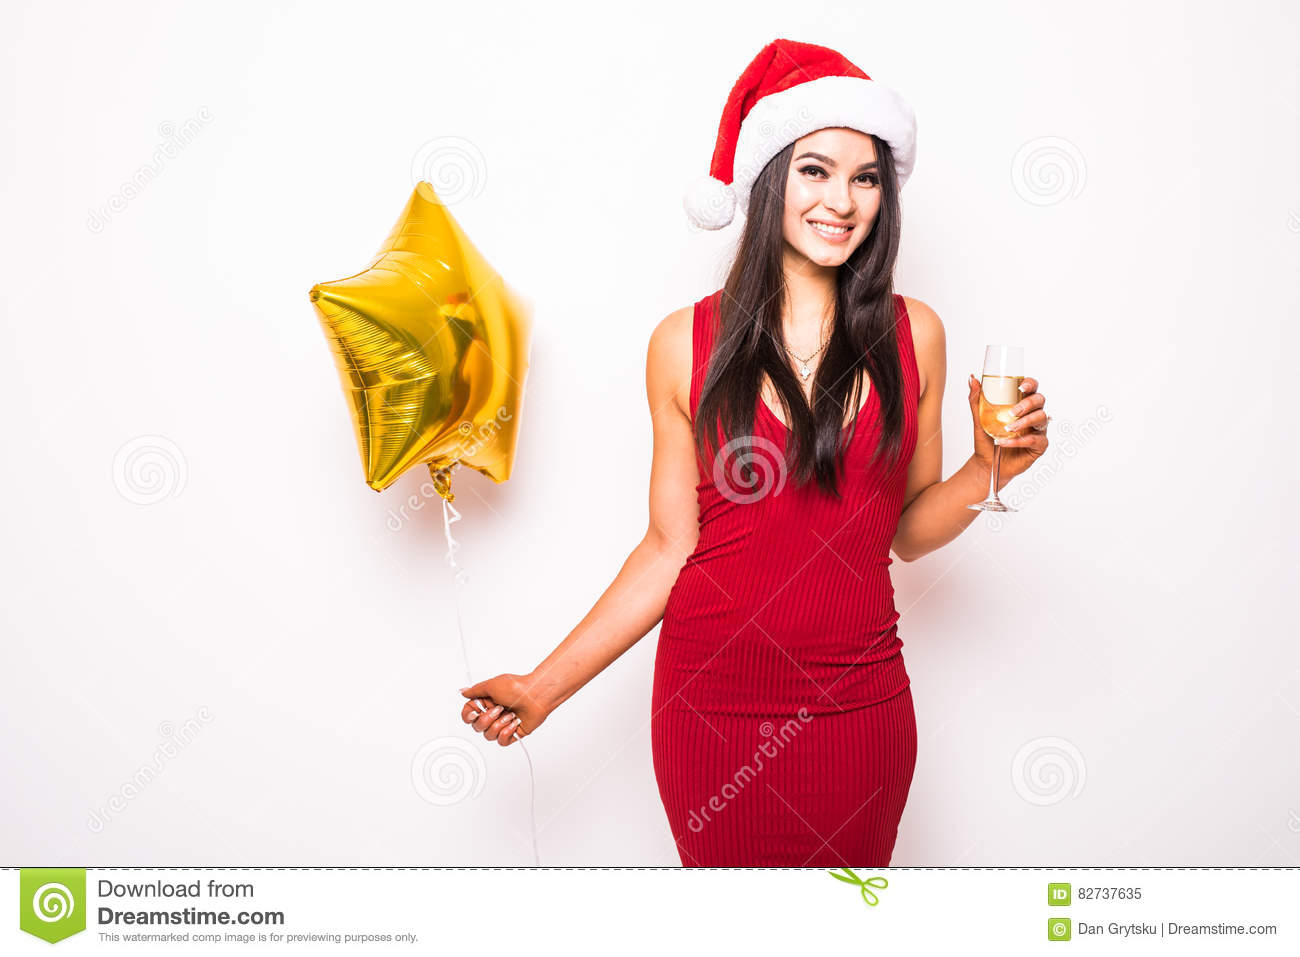 6956a86fb93f Pretty young woman in red dress and santa christmas hat with gold star  shaped balloon smiling and drinking champagne over white background